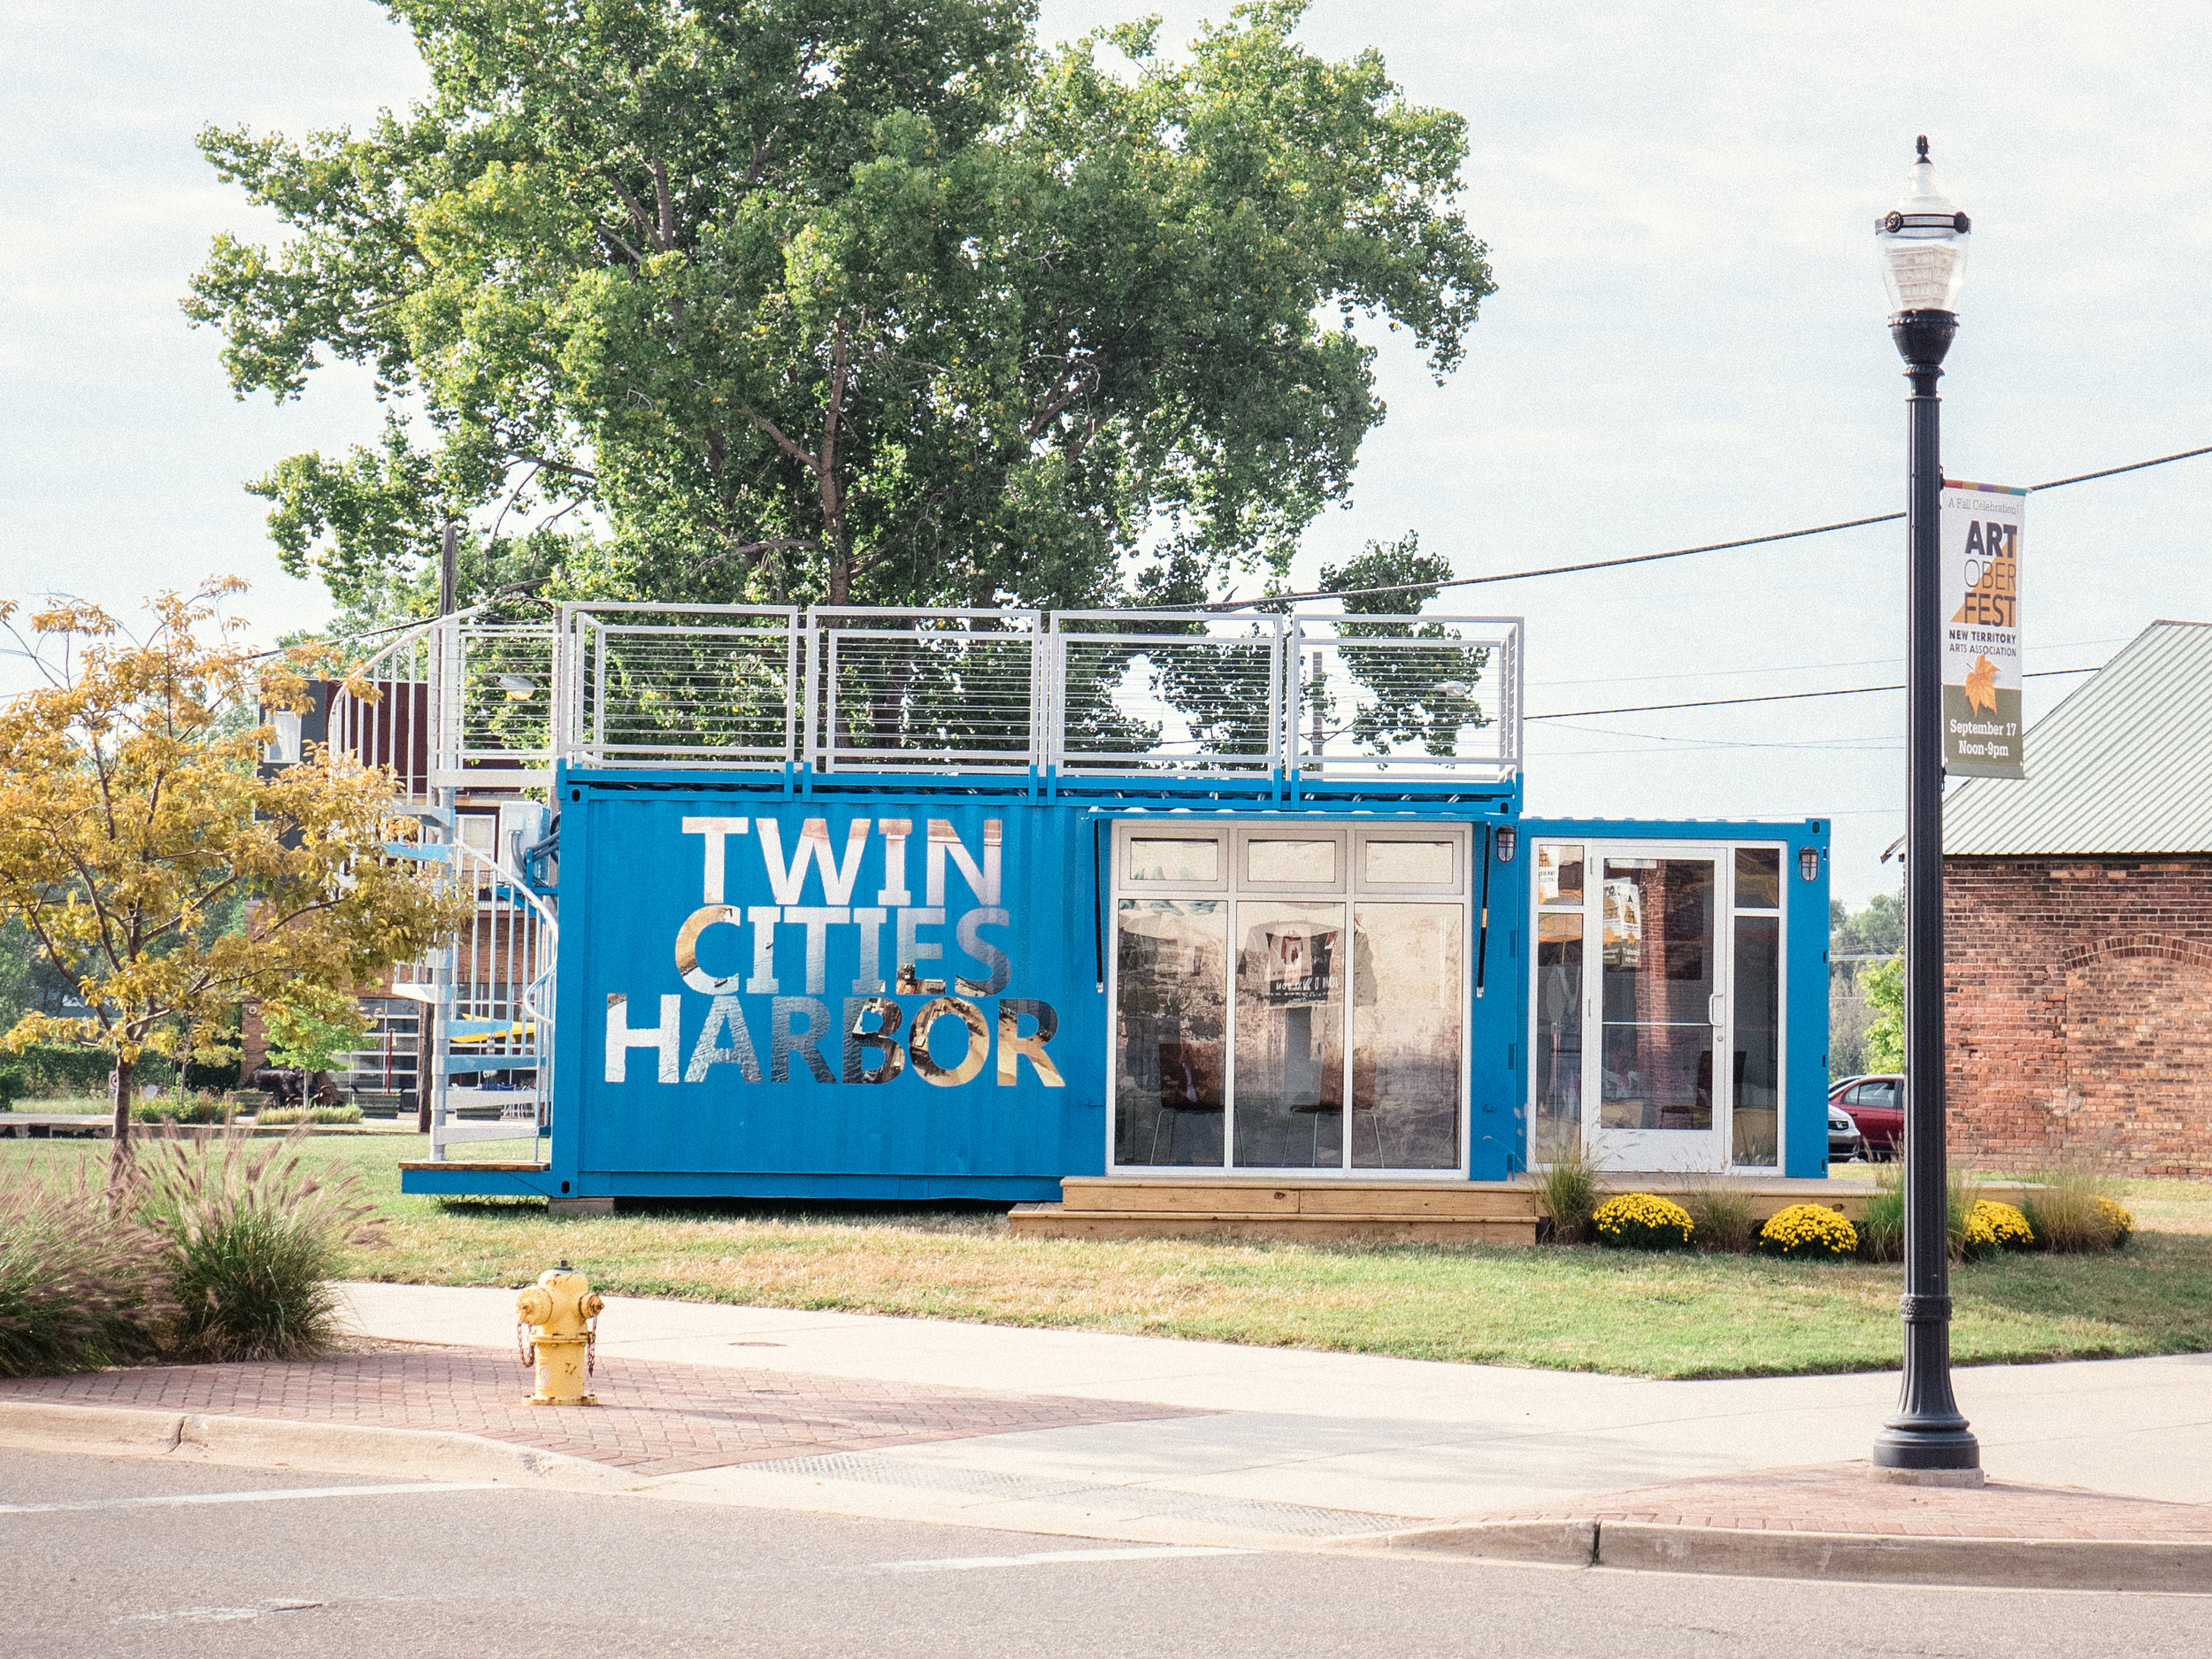 Shipping container retrofitted as community gallery space, Benton Harbor, Michigan